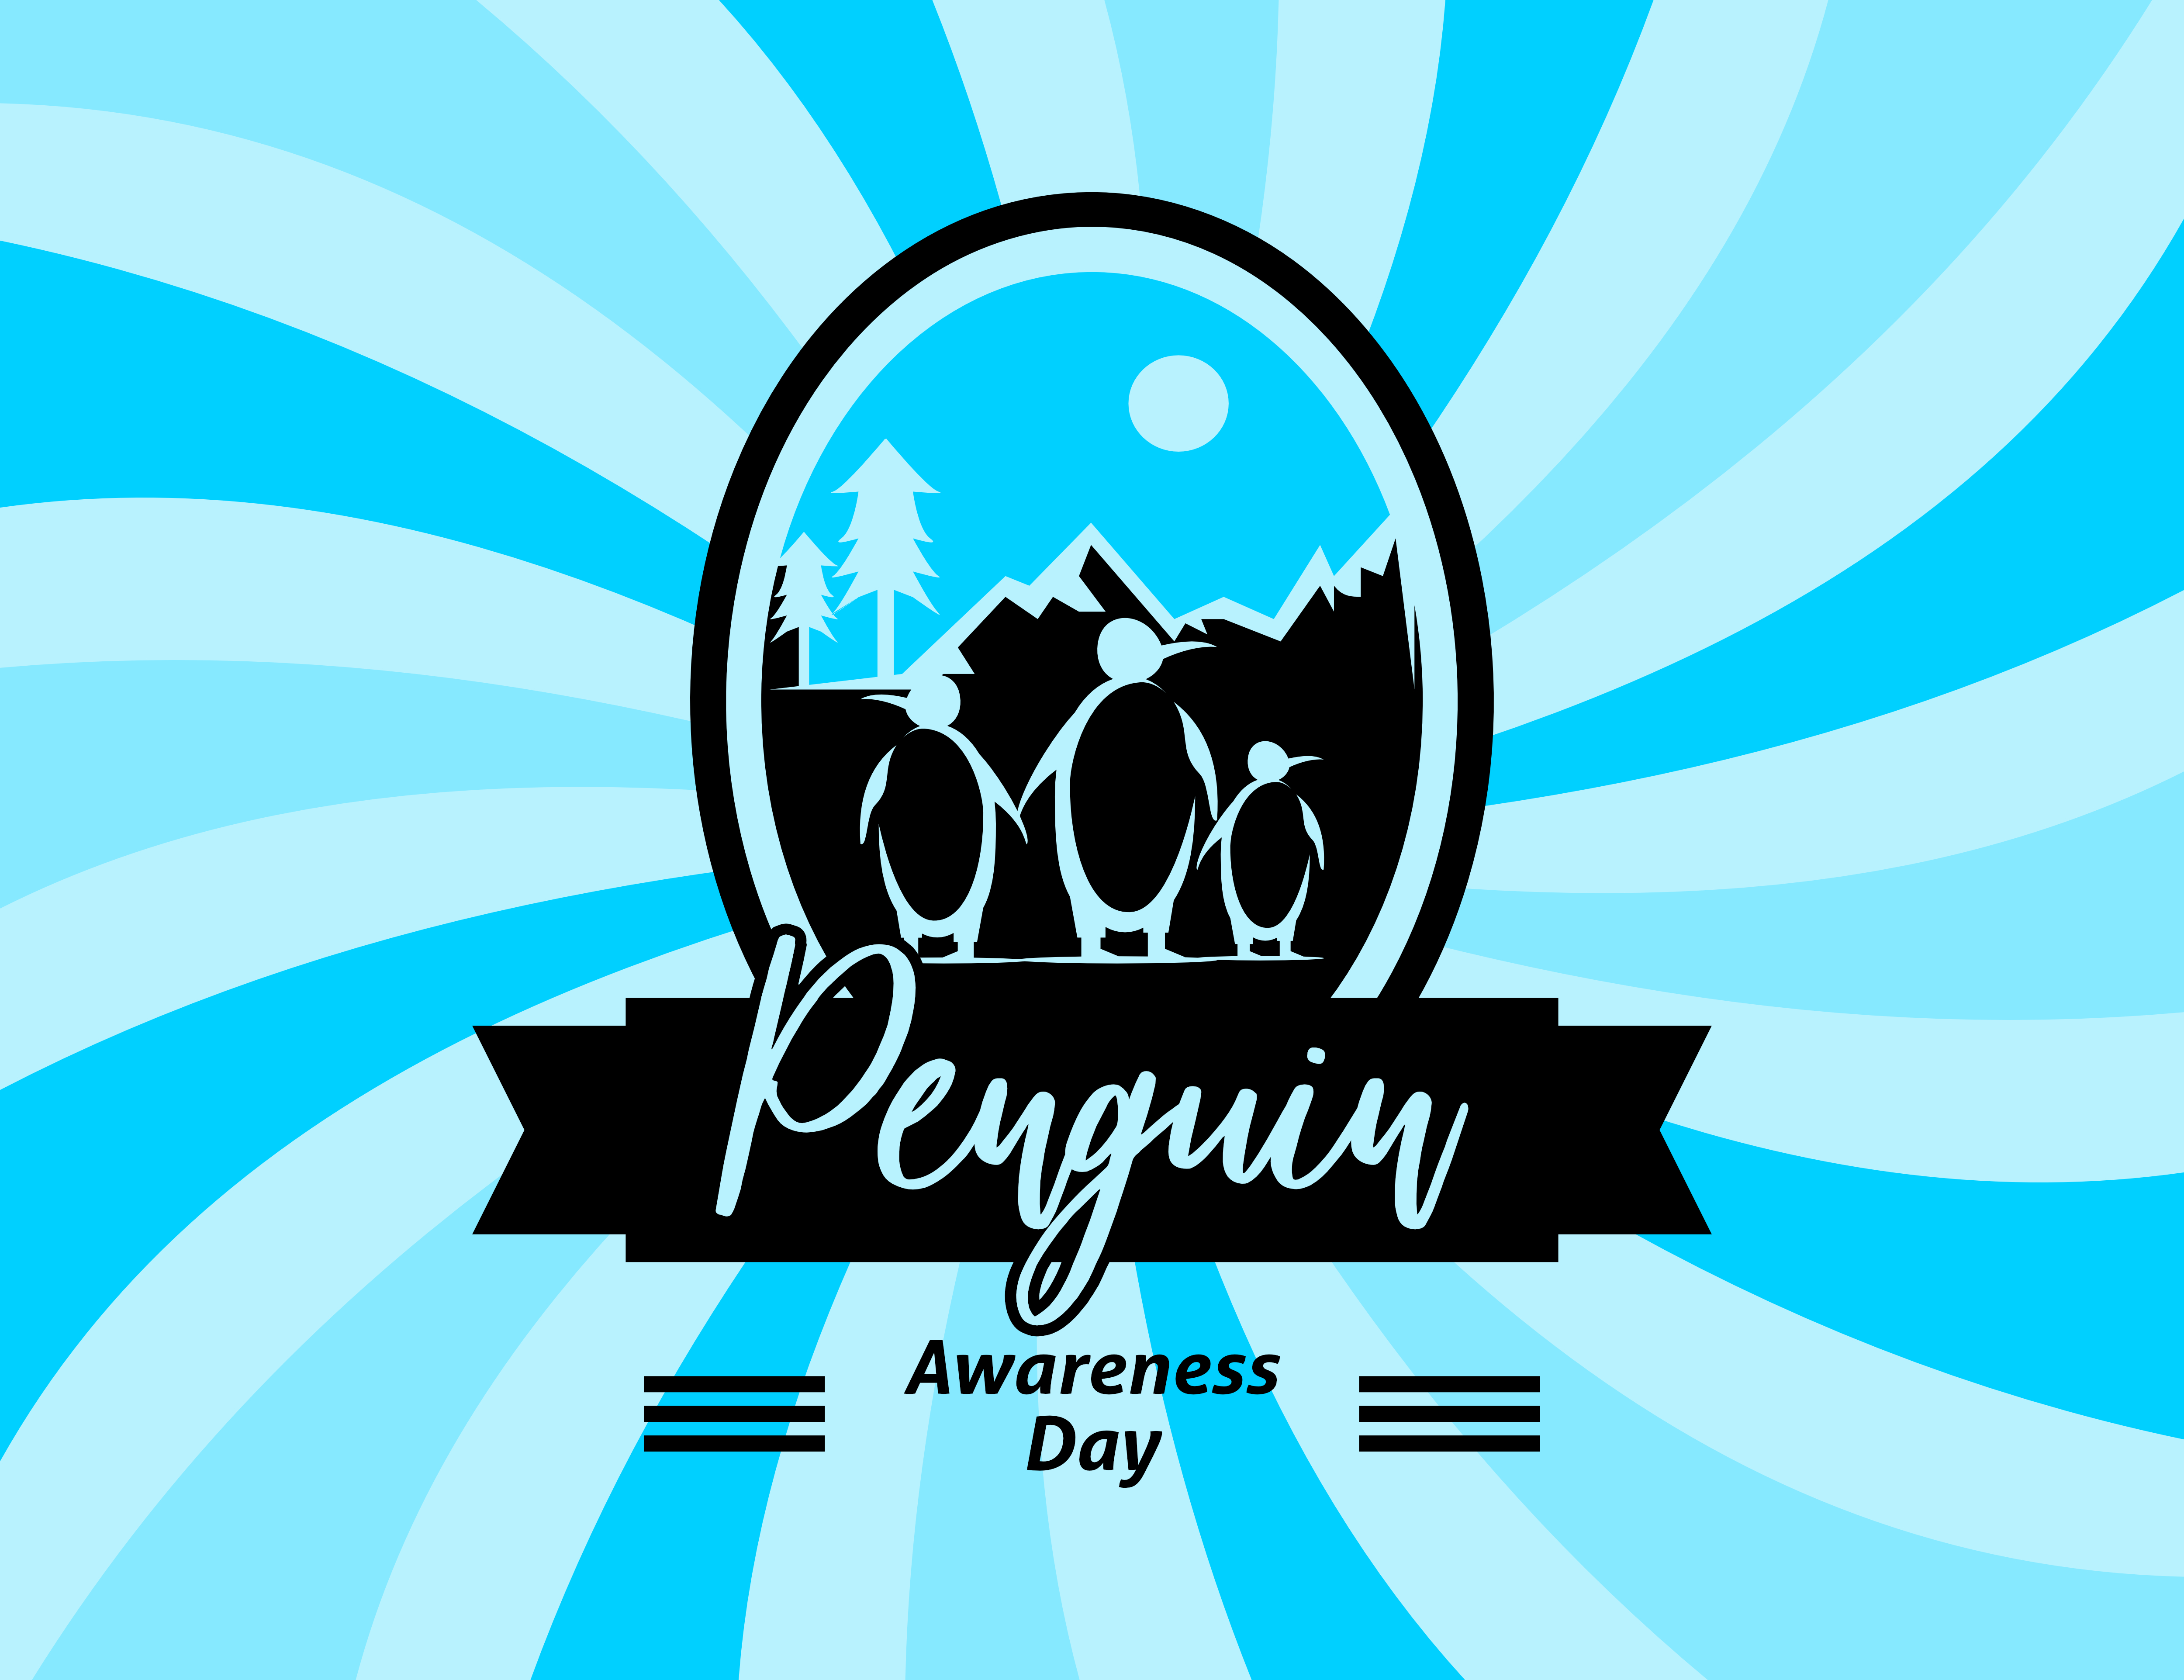 Download Free Penguin Awareness Day Vector Illustration Graphic By Meisuseno for Cricut Explore, Silhouette and other cutting machines.